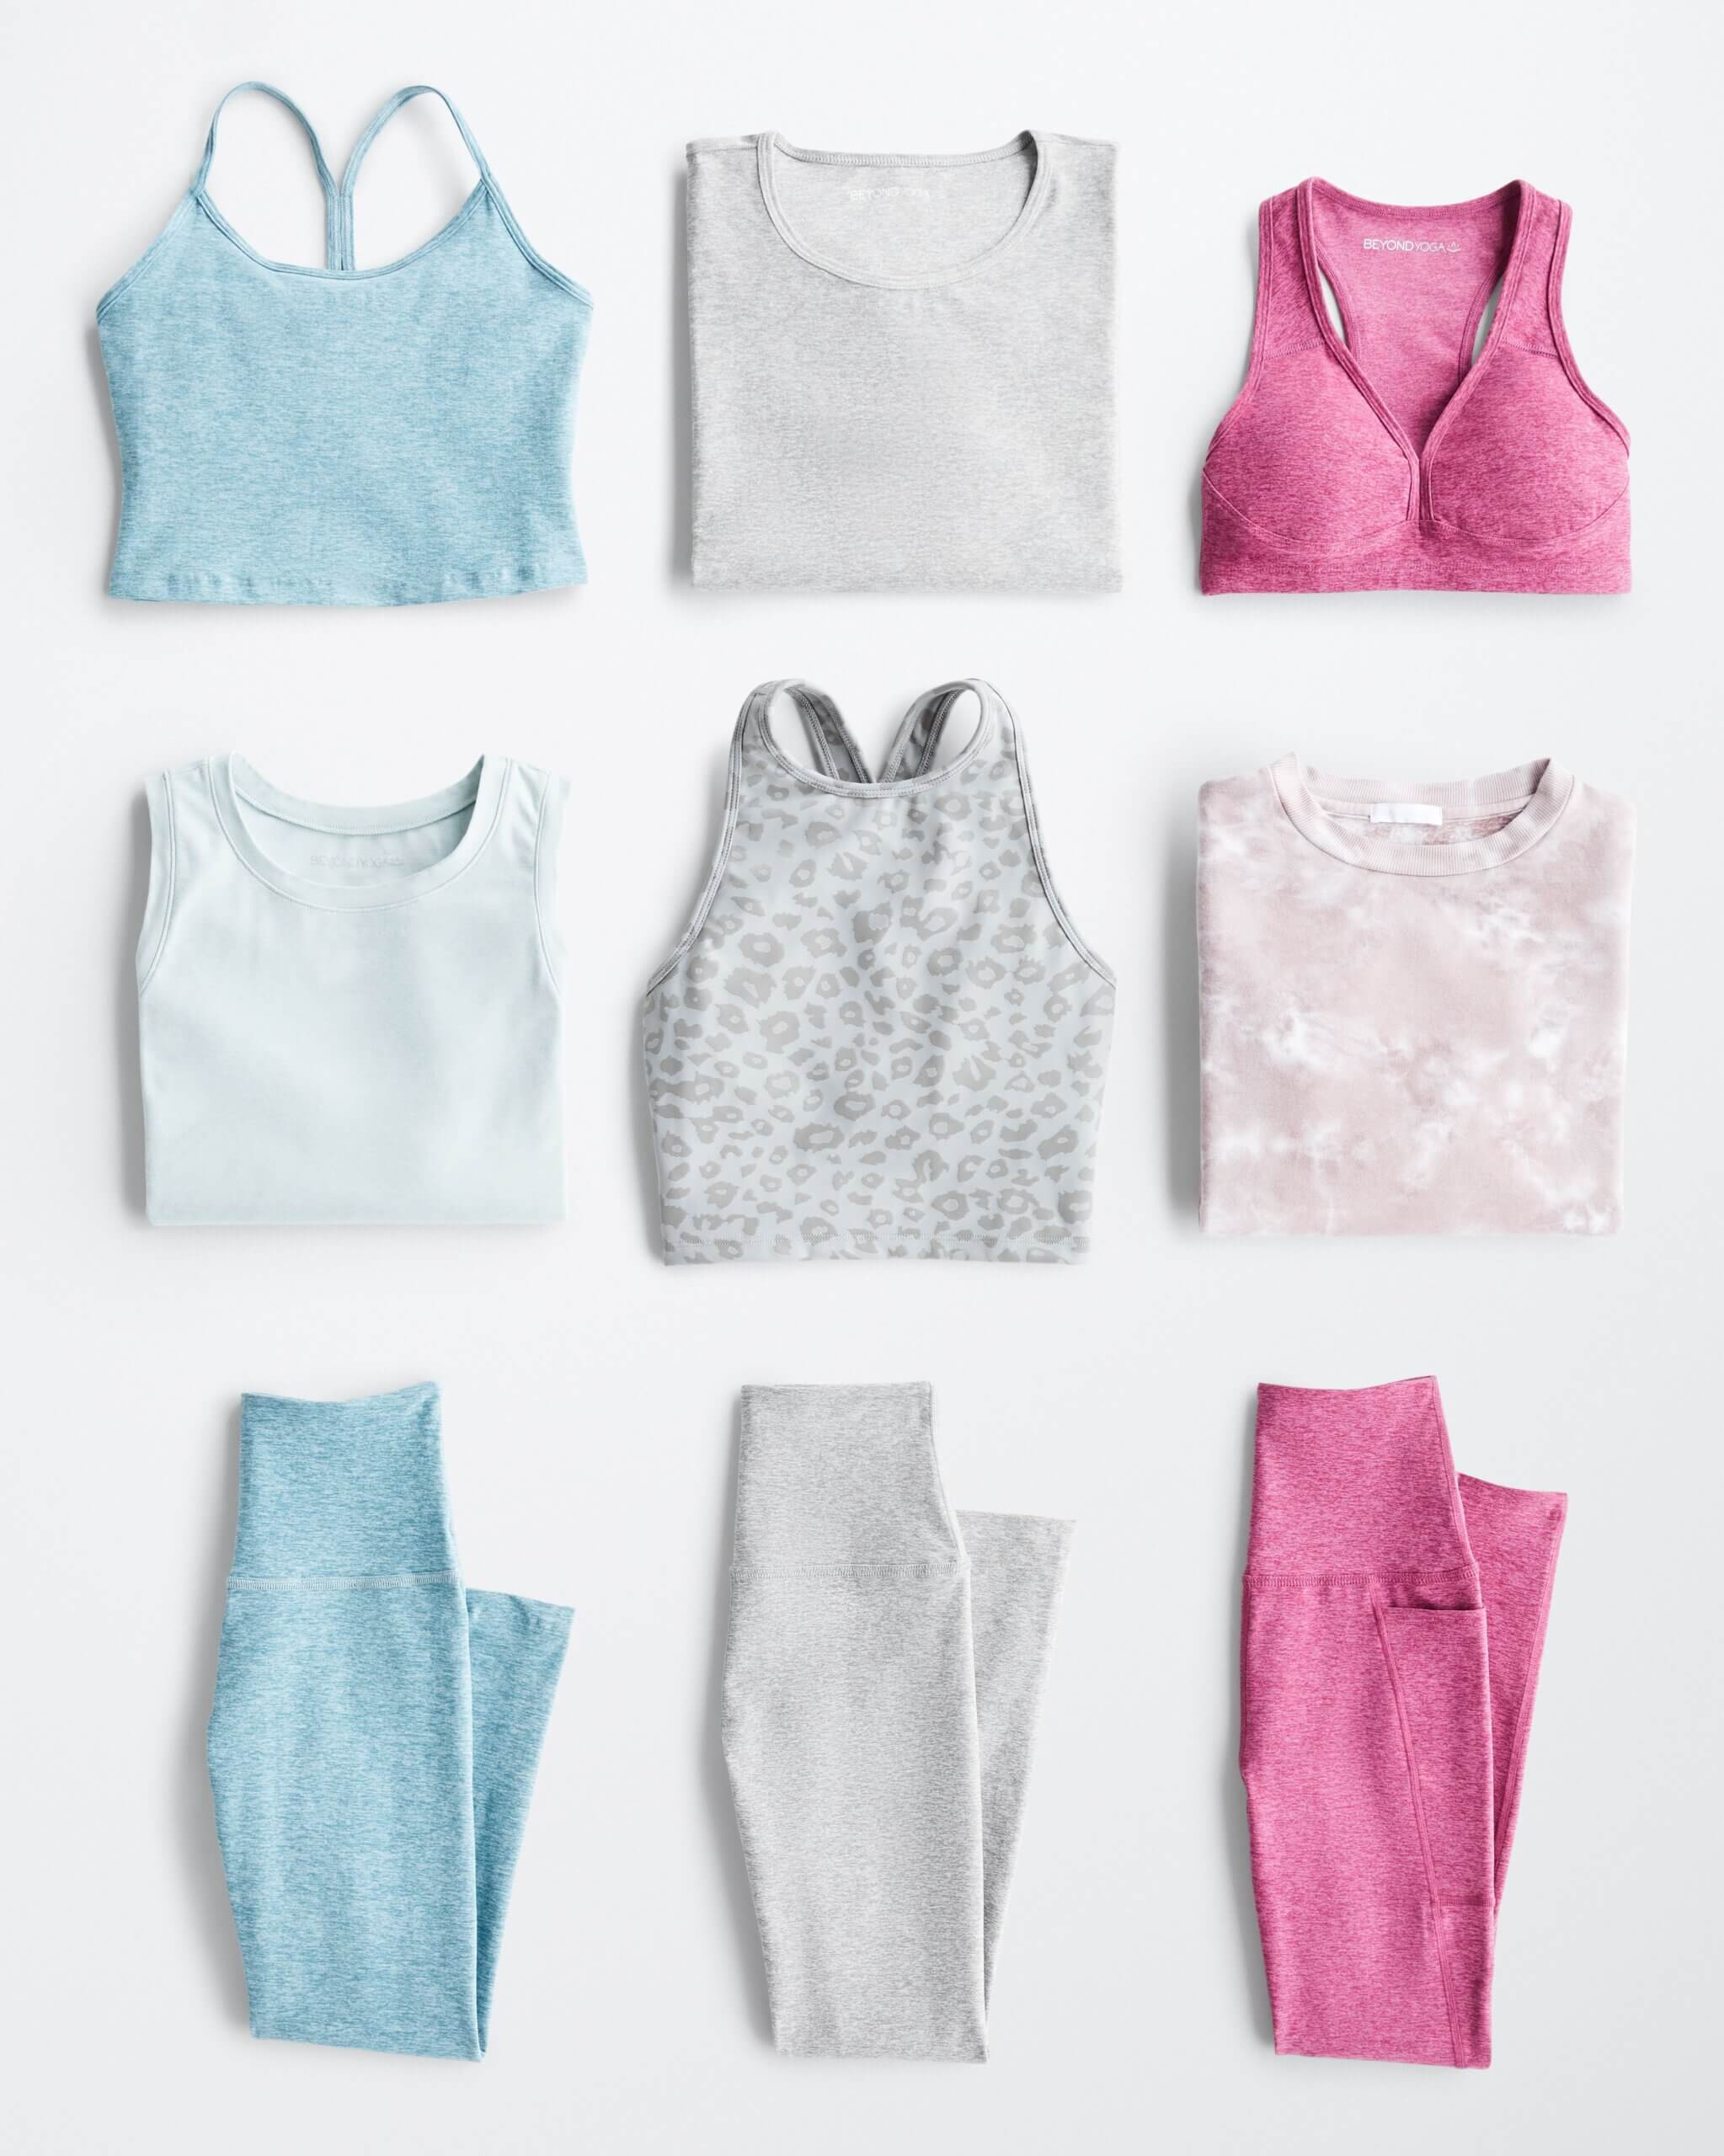 Stitch Fix Women's outfit laydown featuring sports bras, athletic tops and leggings in shades of blue, light grey and pink.